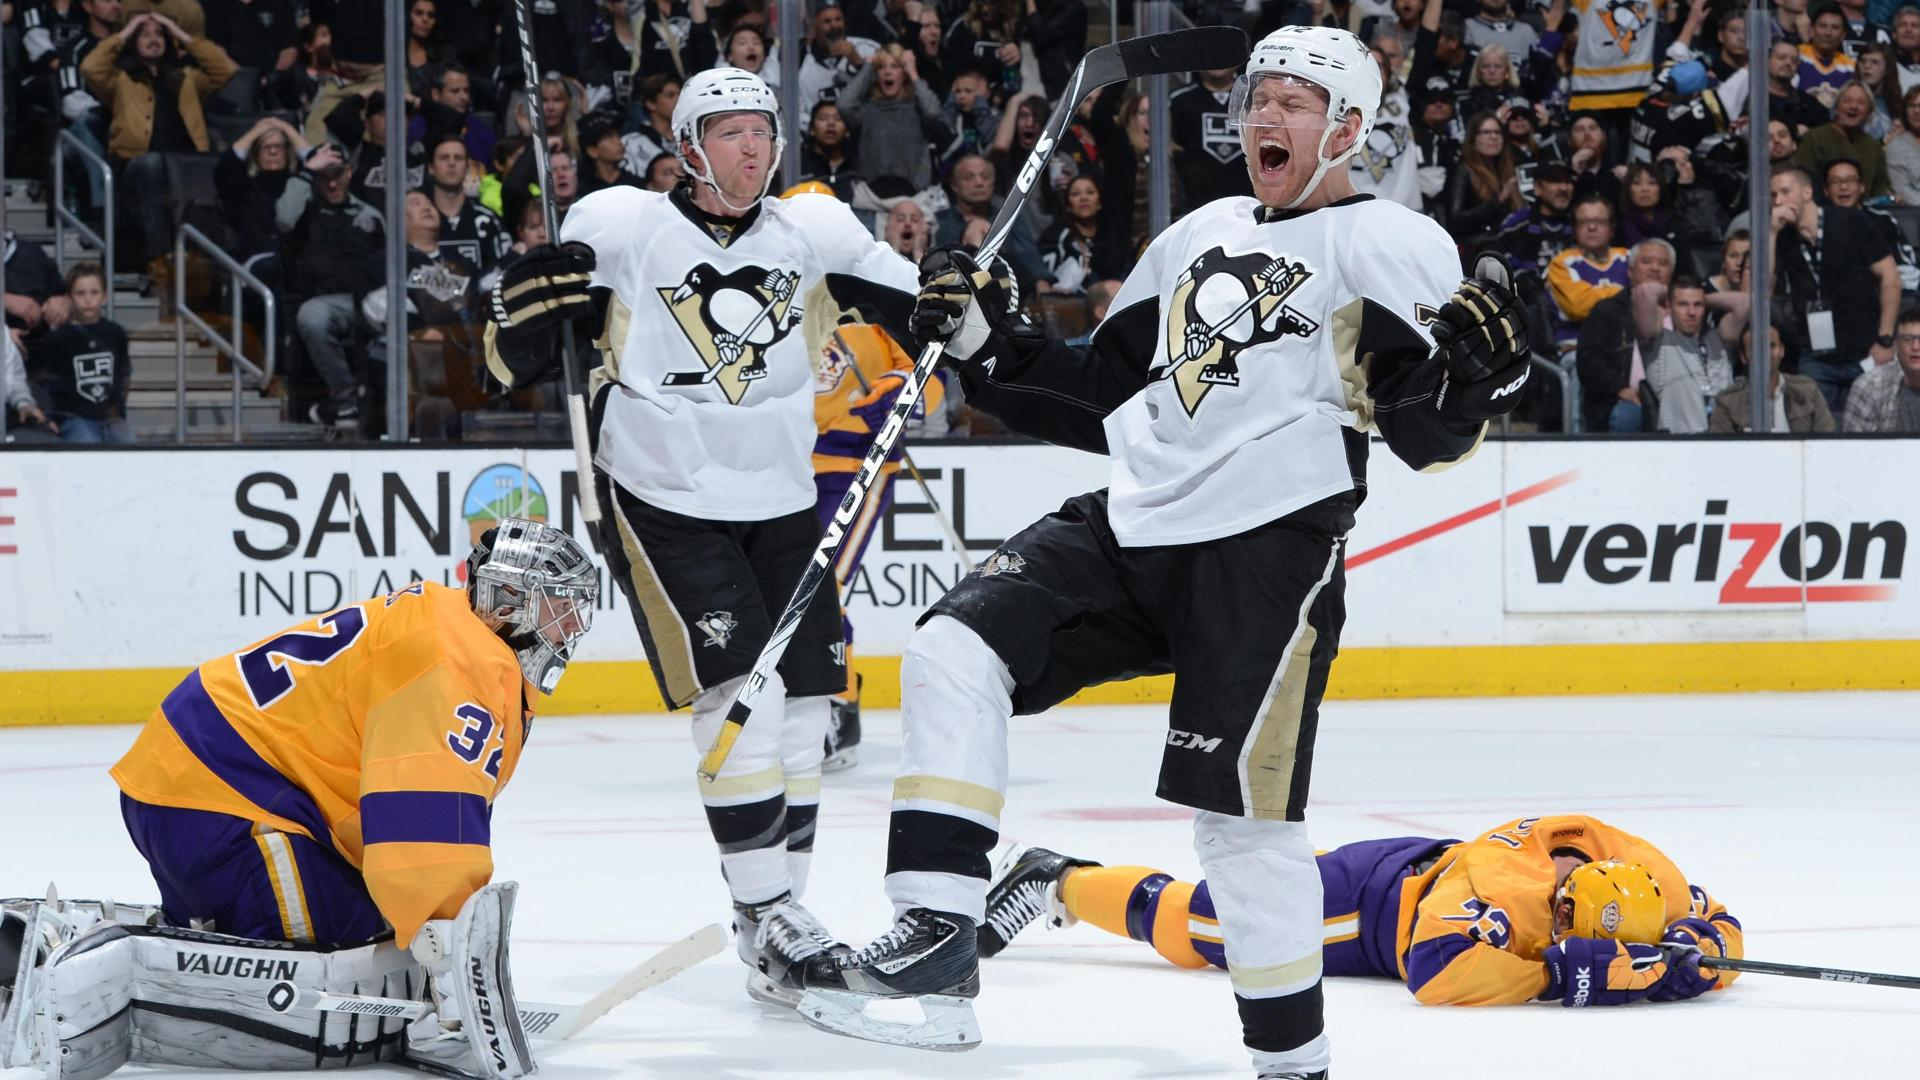 Video - Penguins Shutout Kings